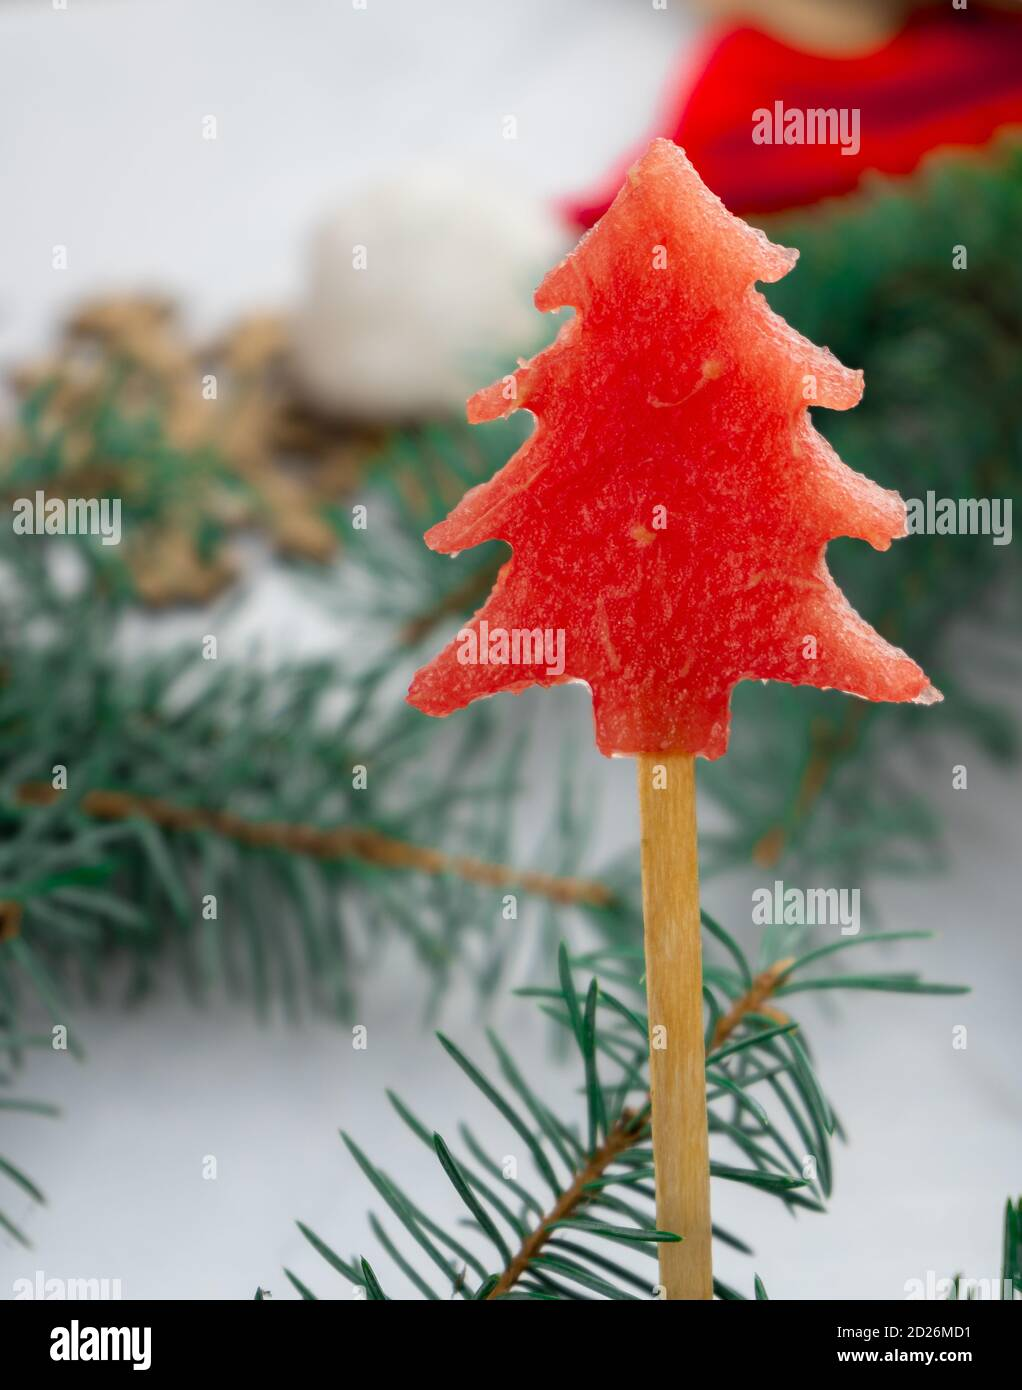 Watermelon Ice Cream In The Shape Of A Christmas Tree Summer Fruit Dessert On A Stick For Design Card Happy New Year Slices Of Red Melon Stock Photo Alamy